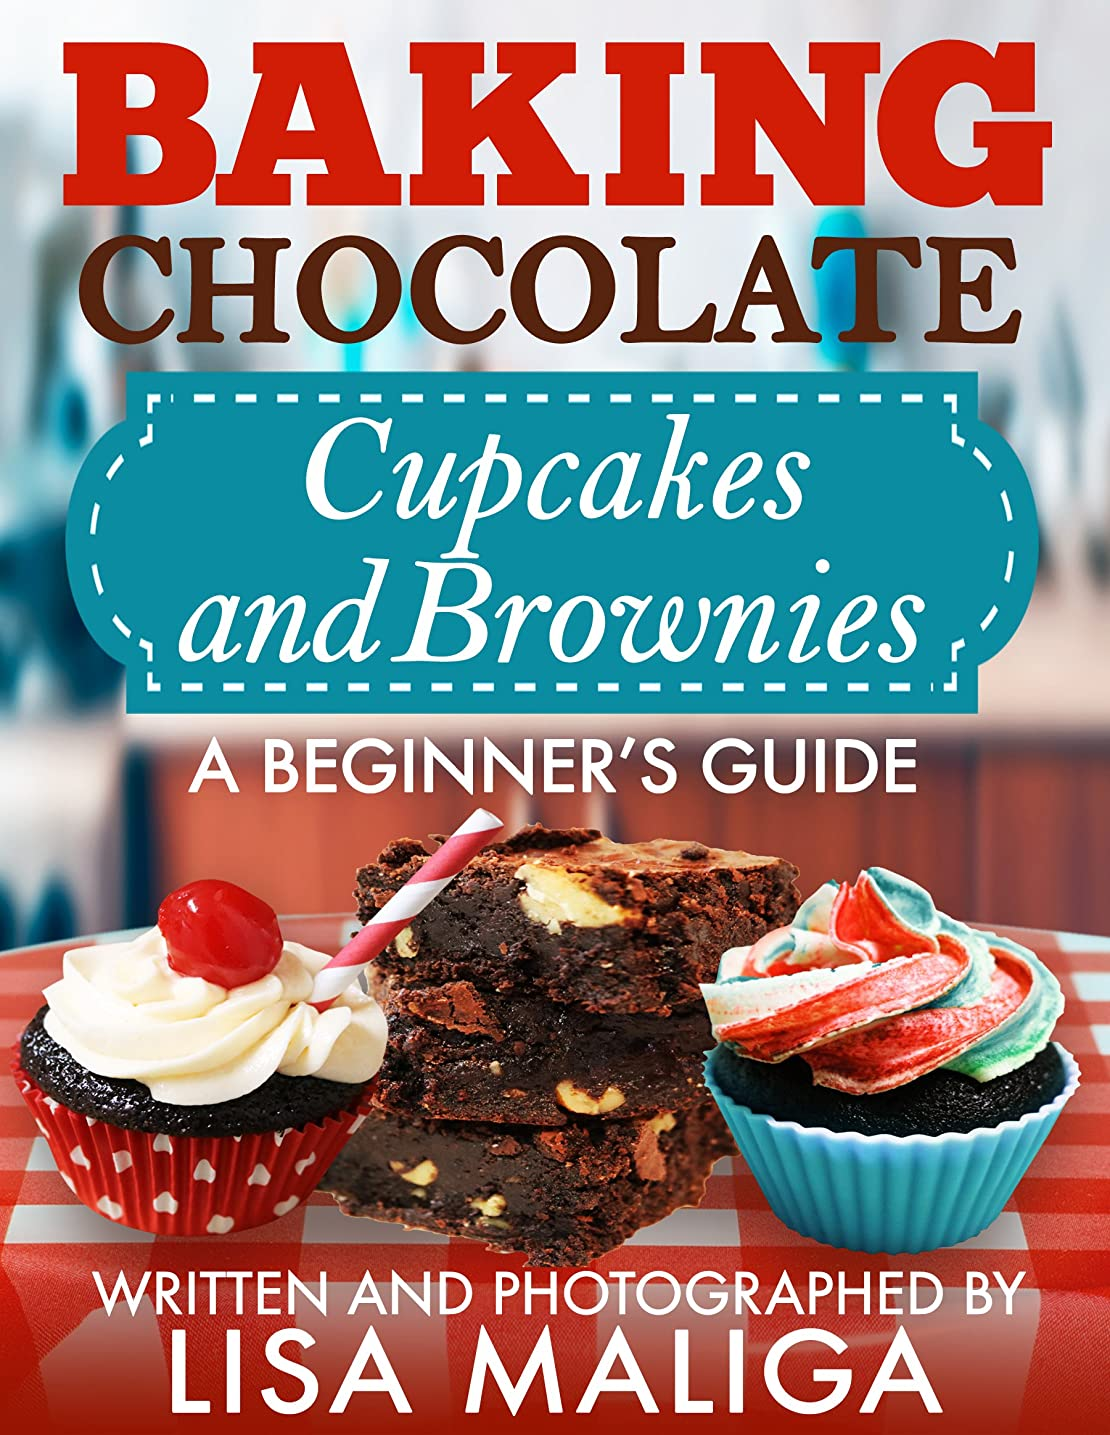 処方する天のかすれたBaking Chocolate Cupcakes and Brownies: A Beginner's Guide (English Edition)